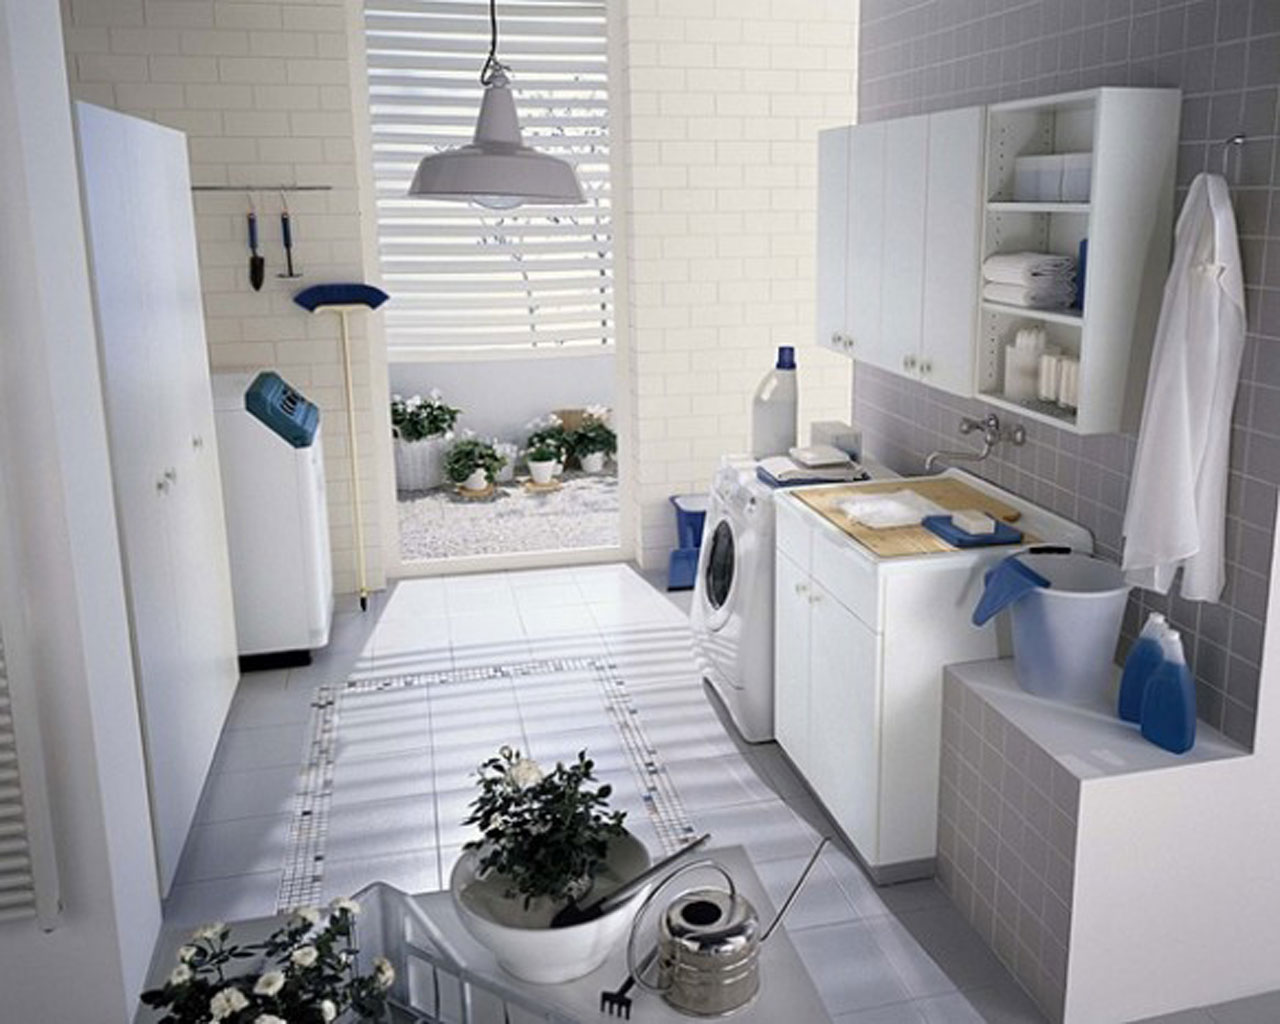 Small bathroom designs with washer and dryer specs for Bathroom laundry room designs